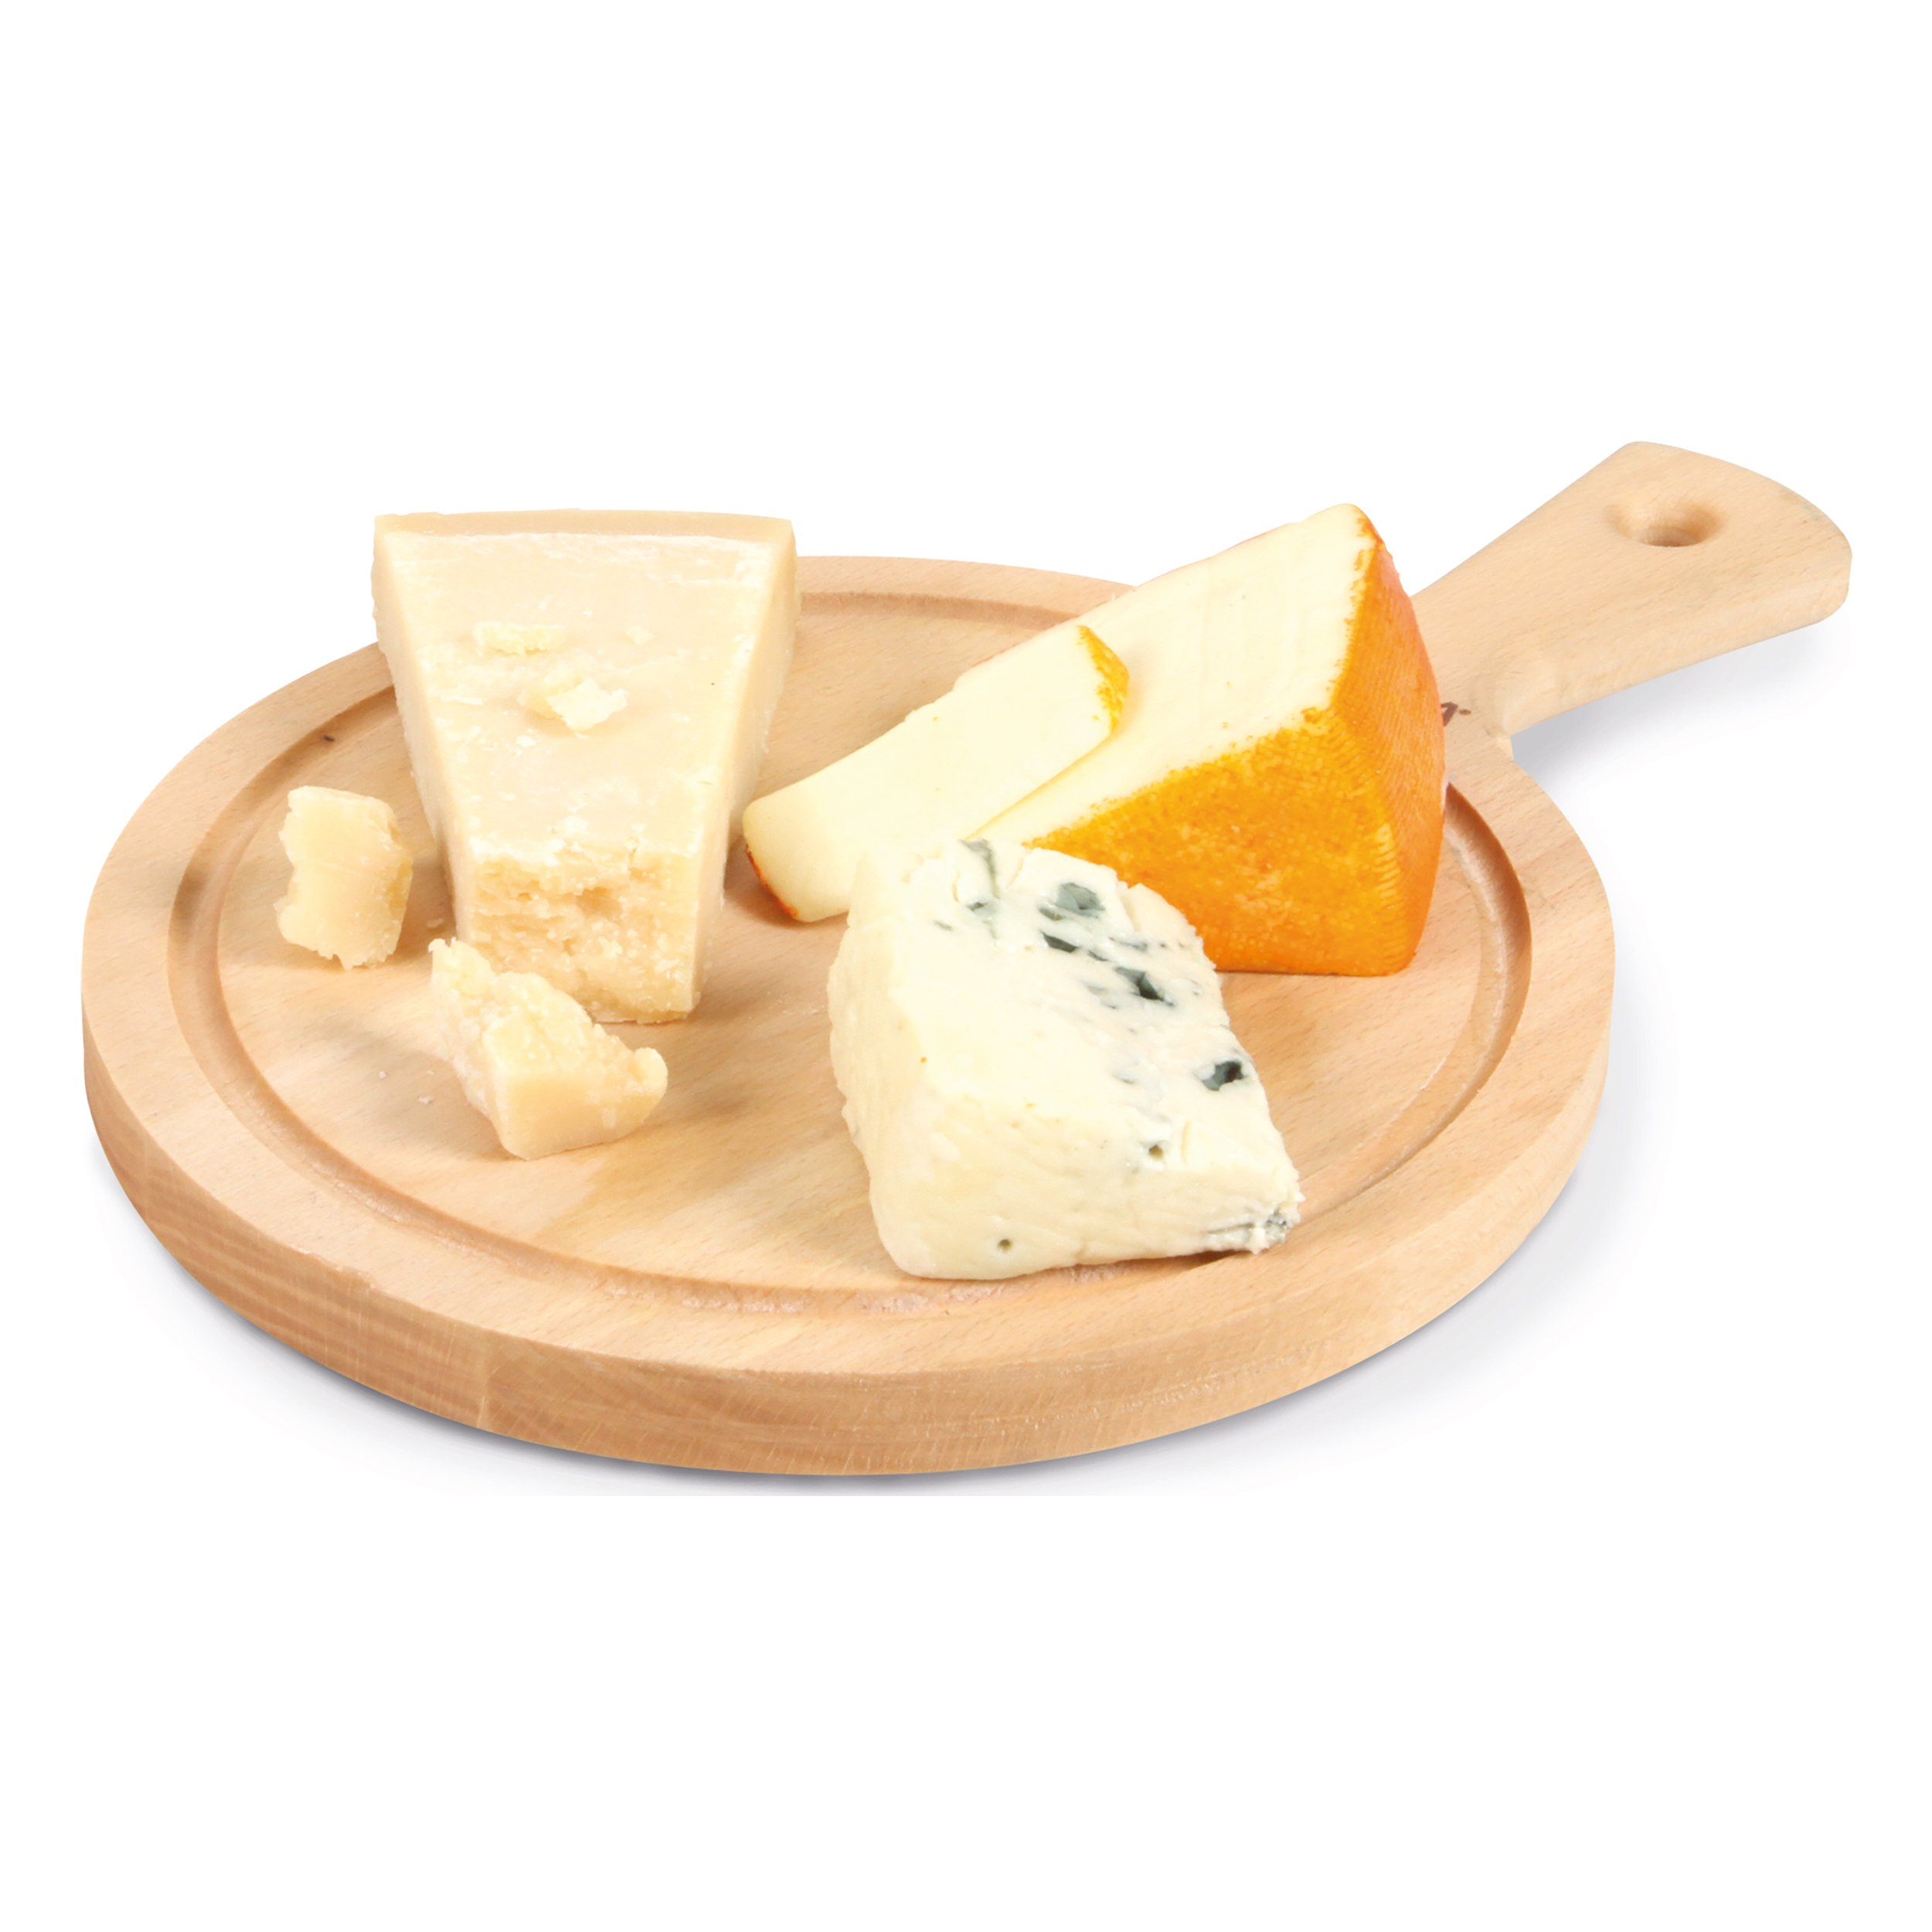 Boska Holland Beech Wood Cheese Board, Round Paddle Board, 9'' Diameter, Explore Collection